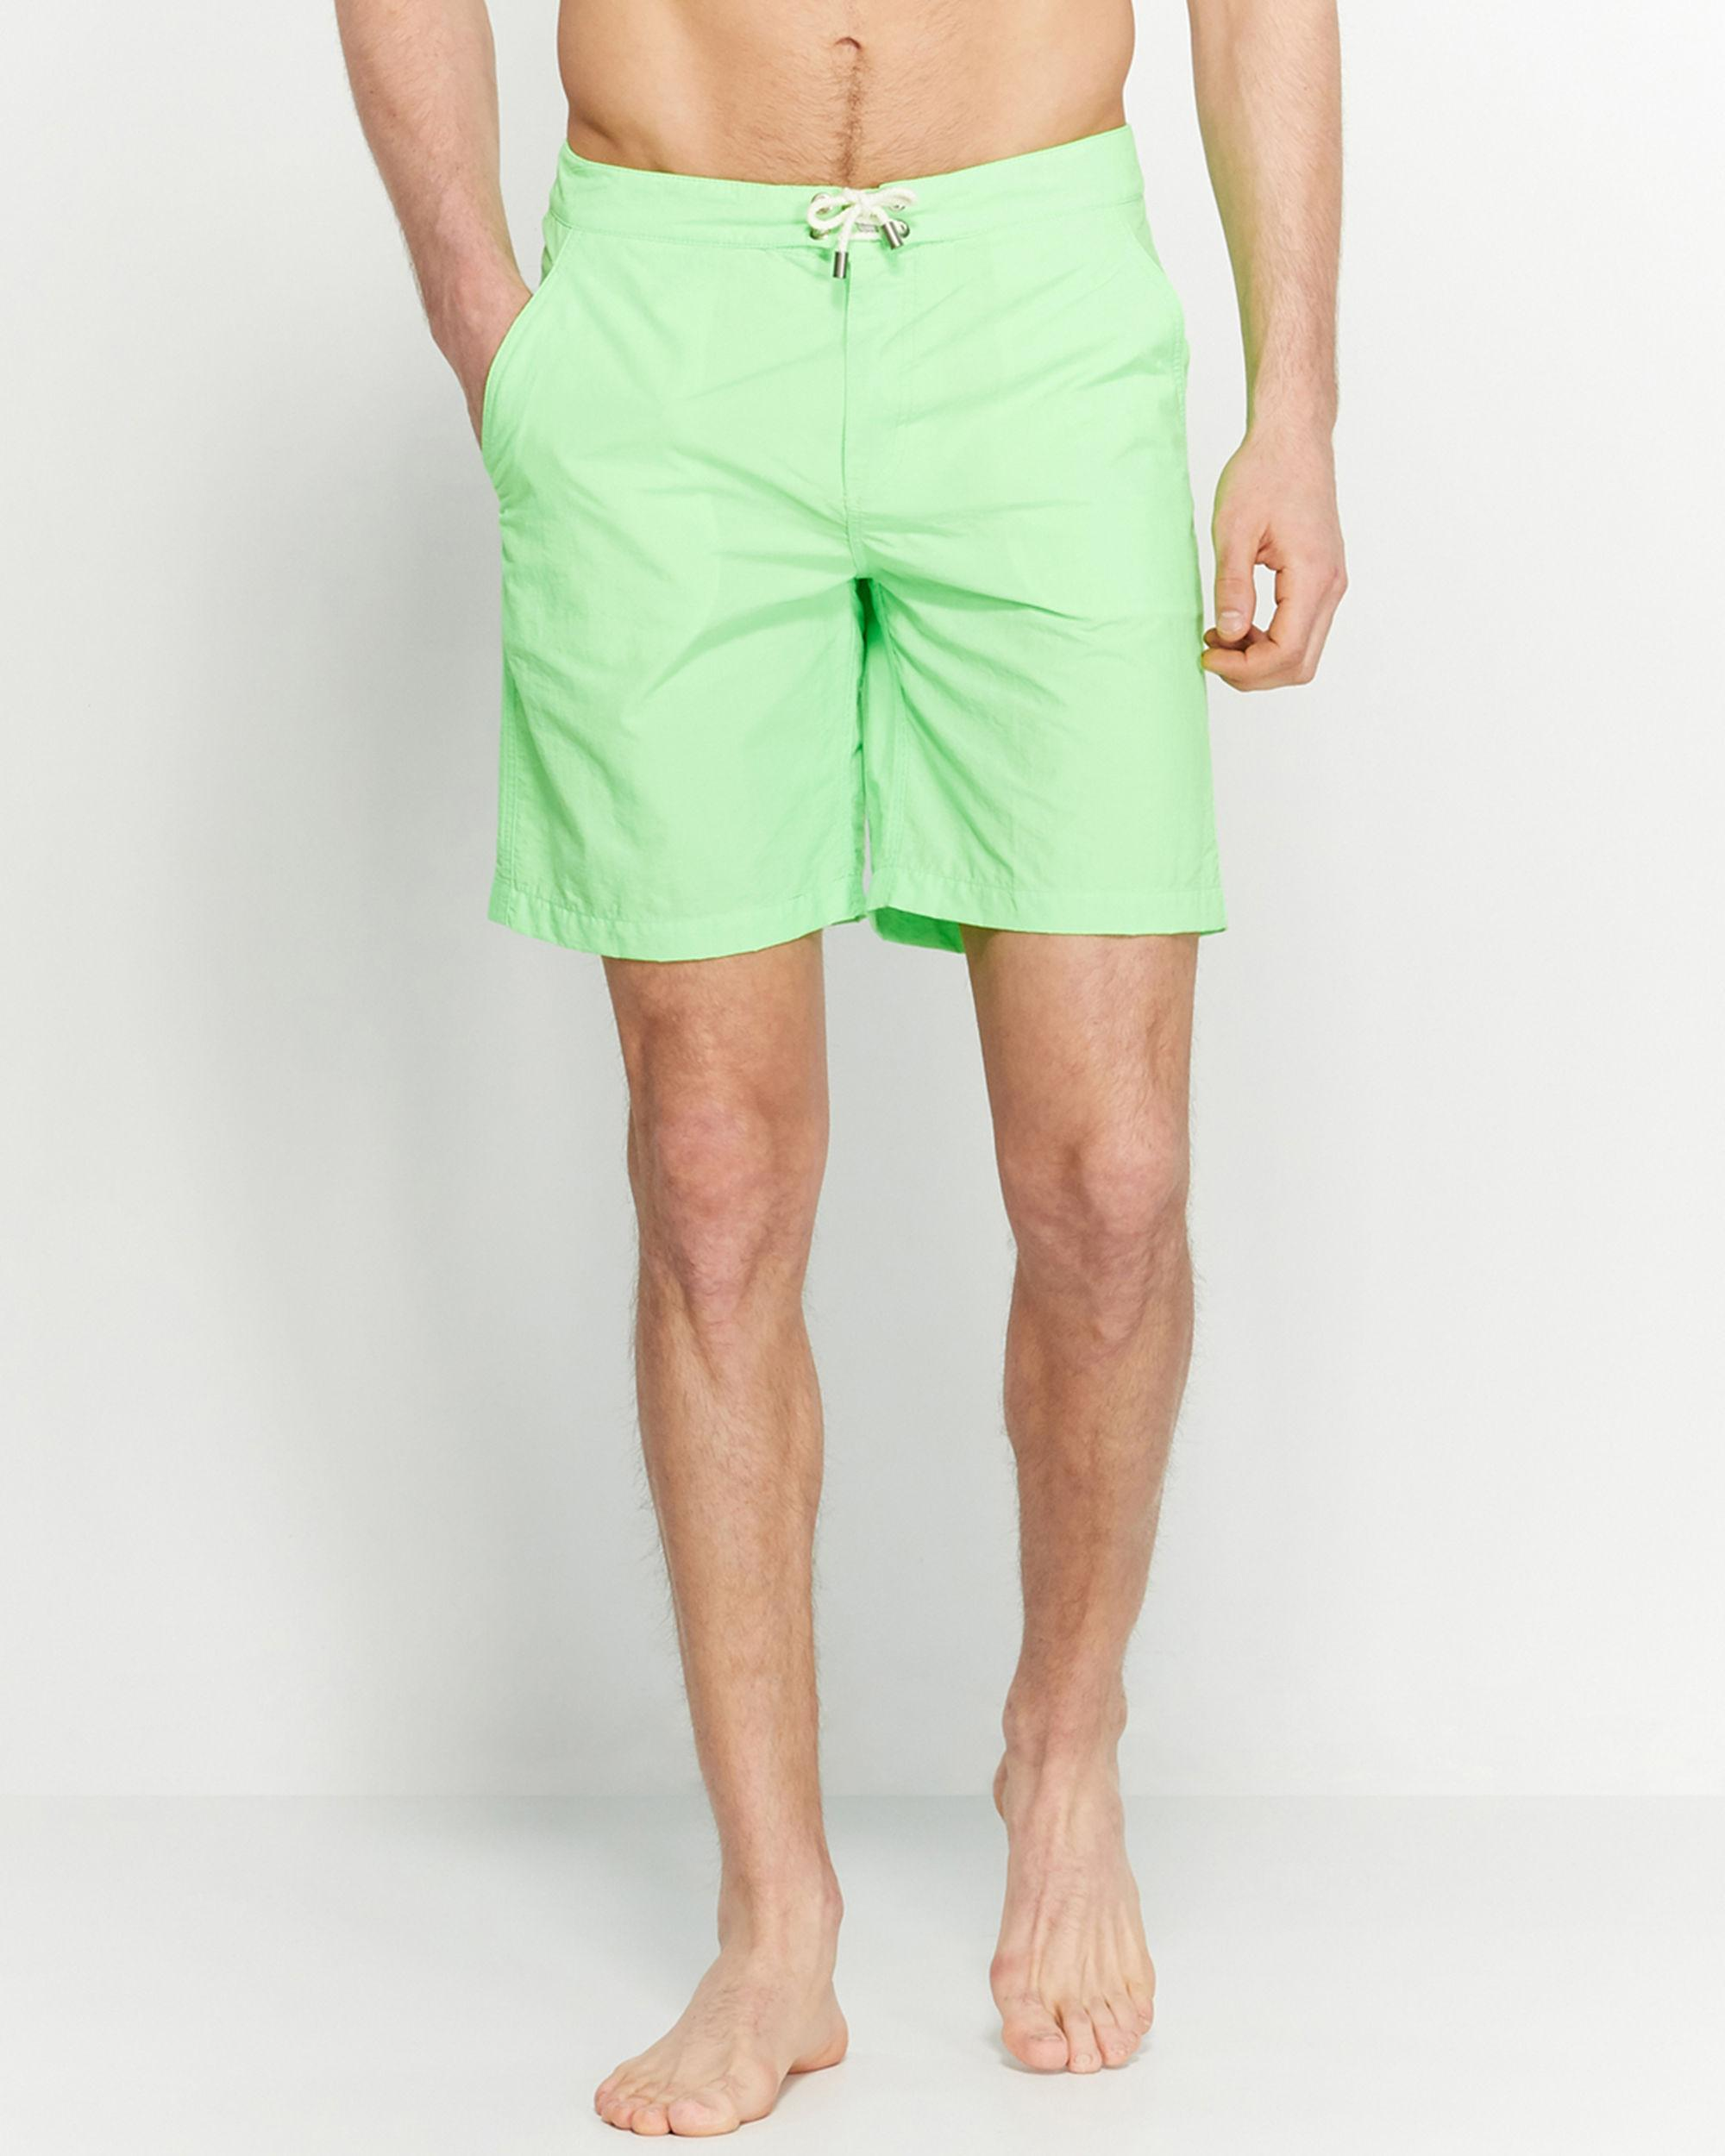 5238d336a69f4 Solid & Striped Neon Green Swim Trunks in Green for Men - Lyst